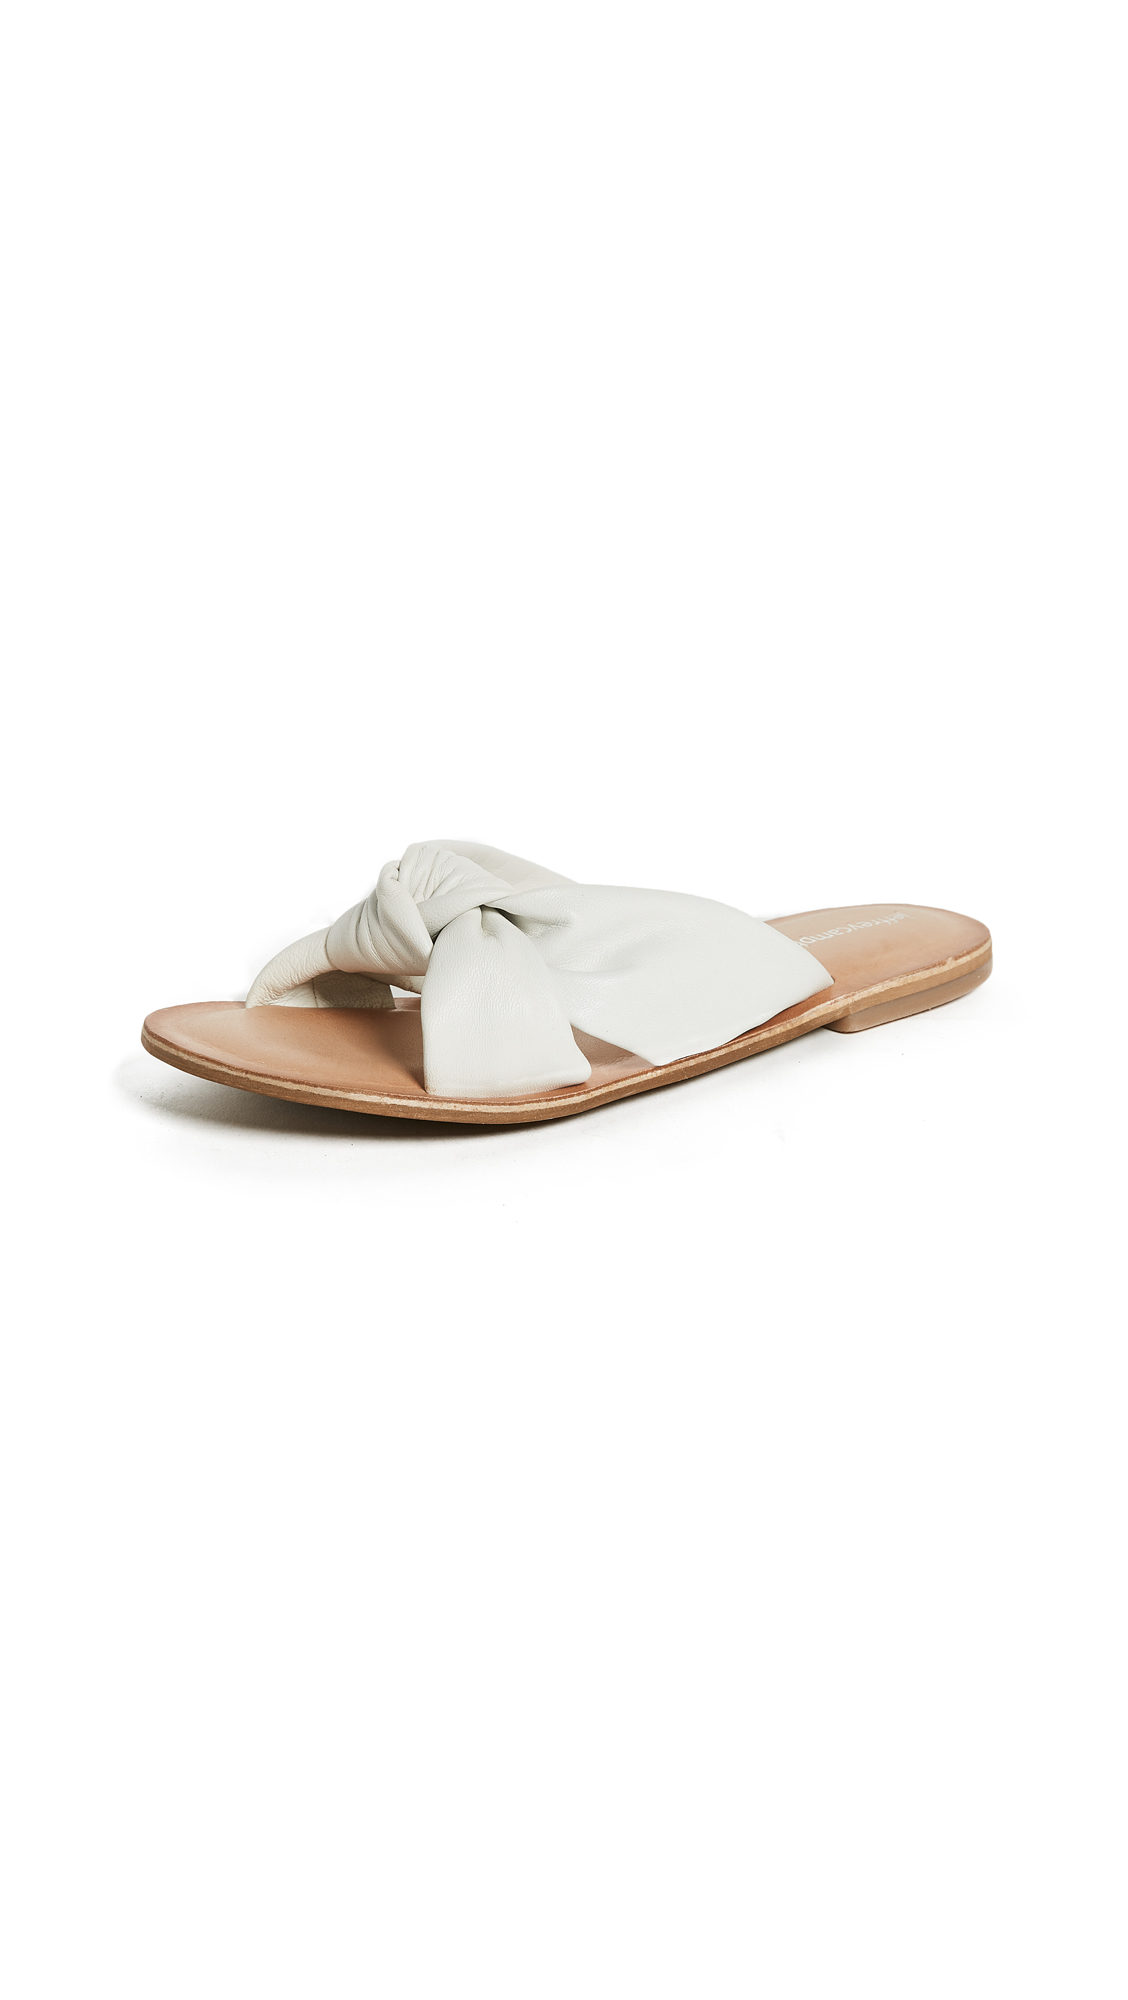 Jeffrey Campbell Zocalo Slides - White